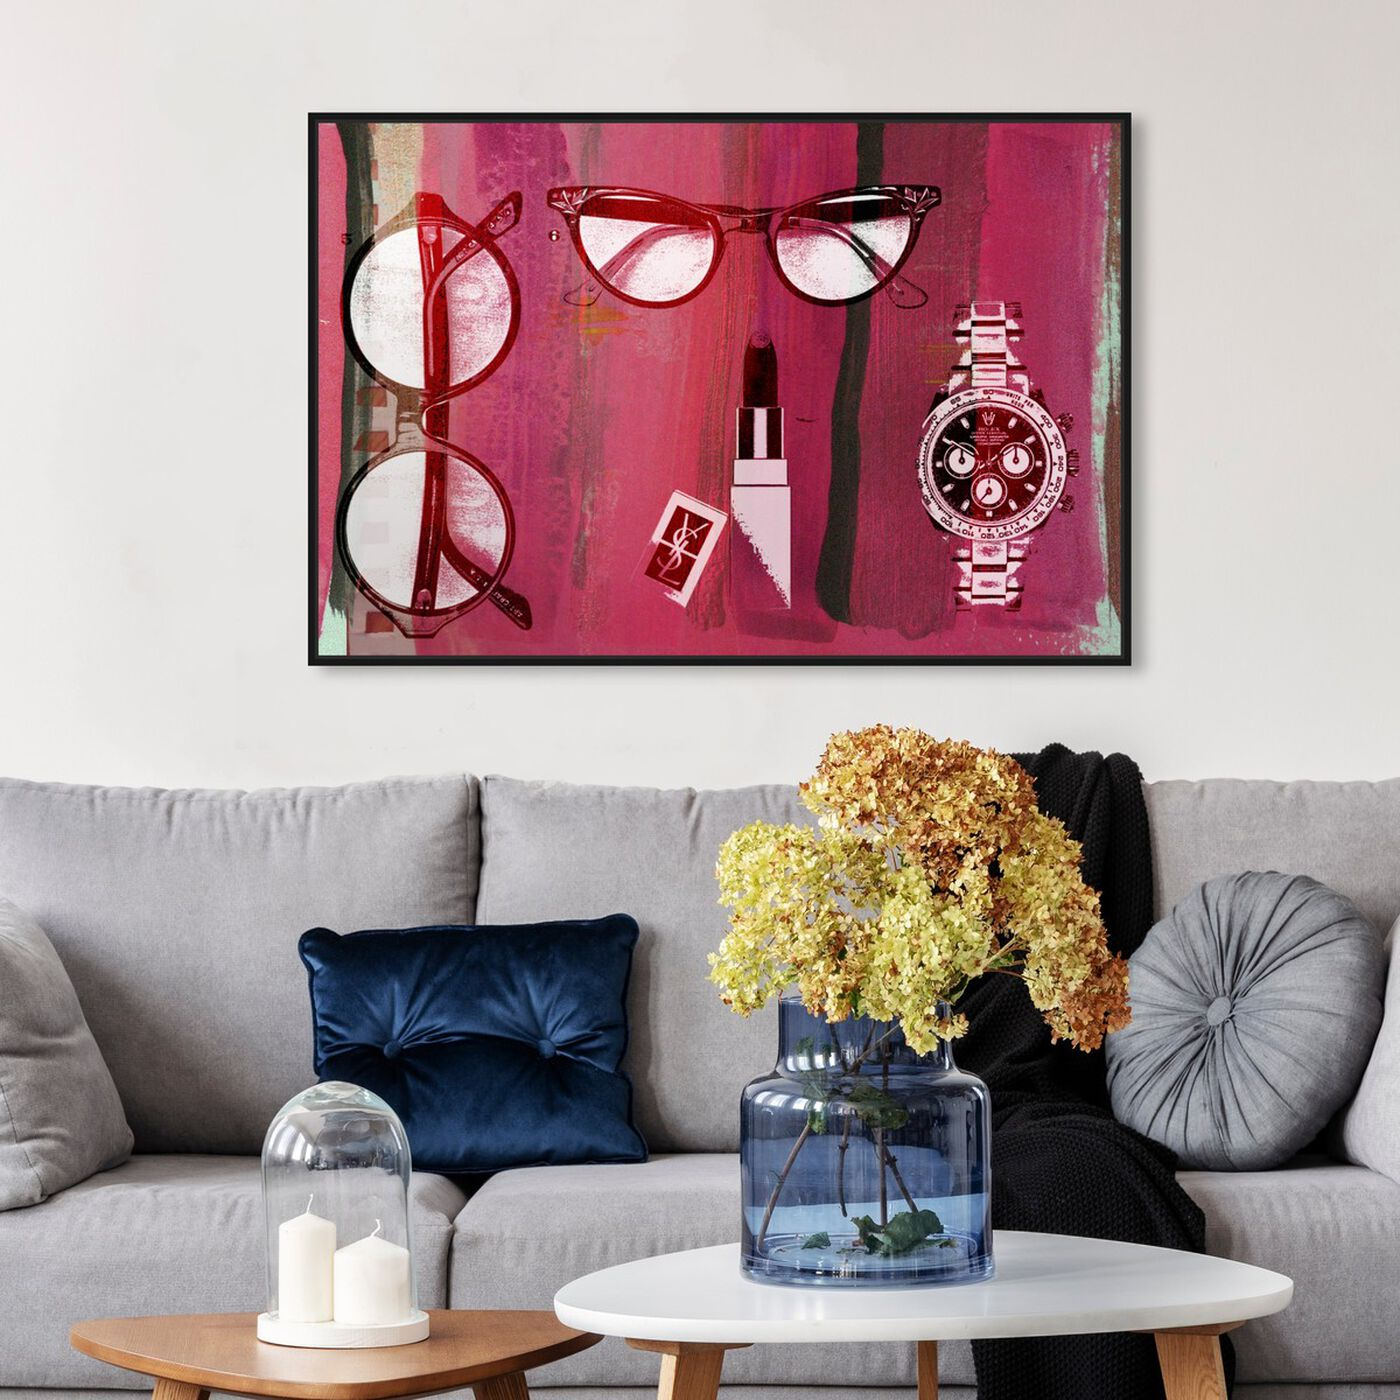 Hanging view of Ready for Spring featuring fashion and glam and accessories art.